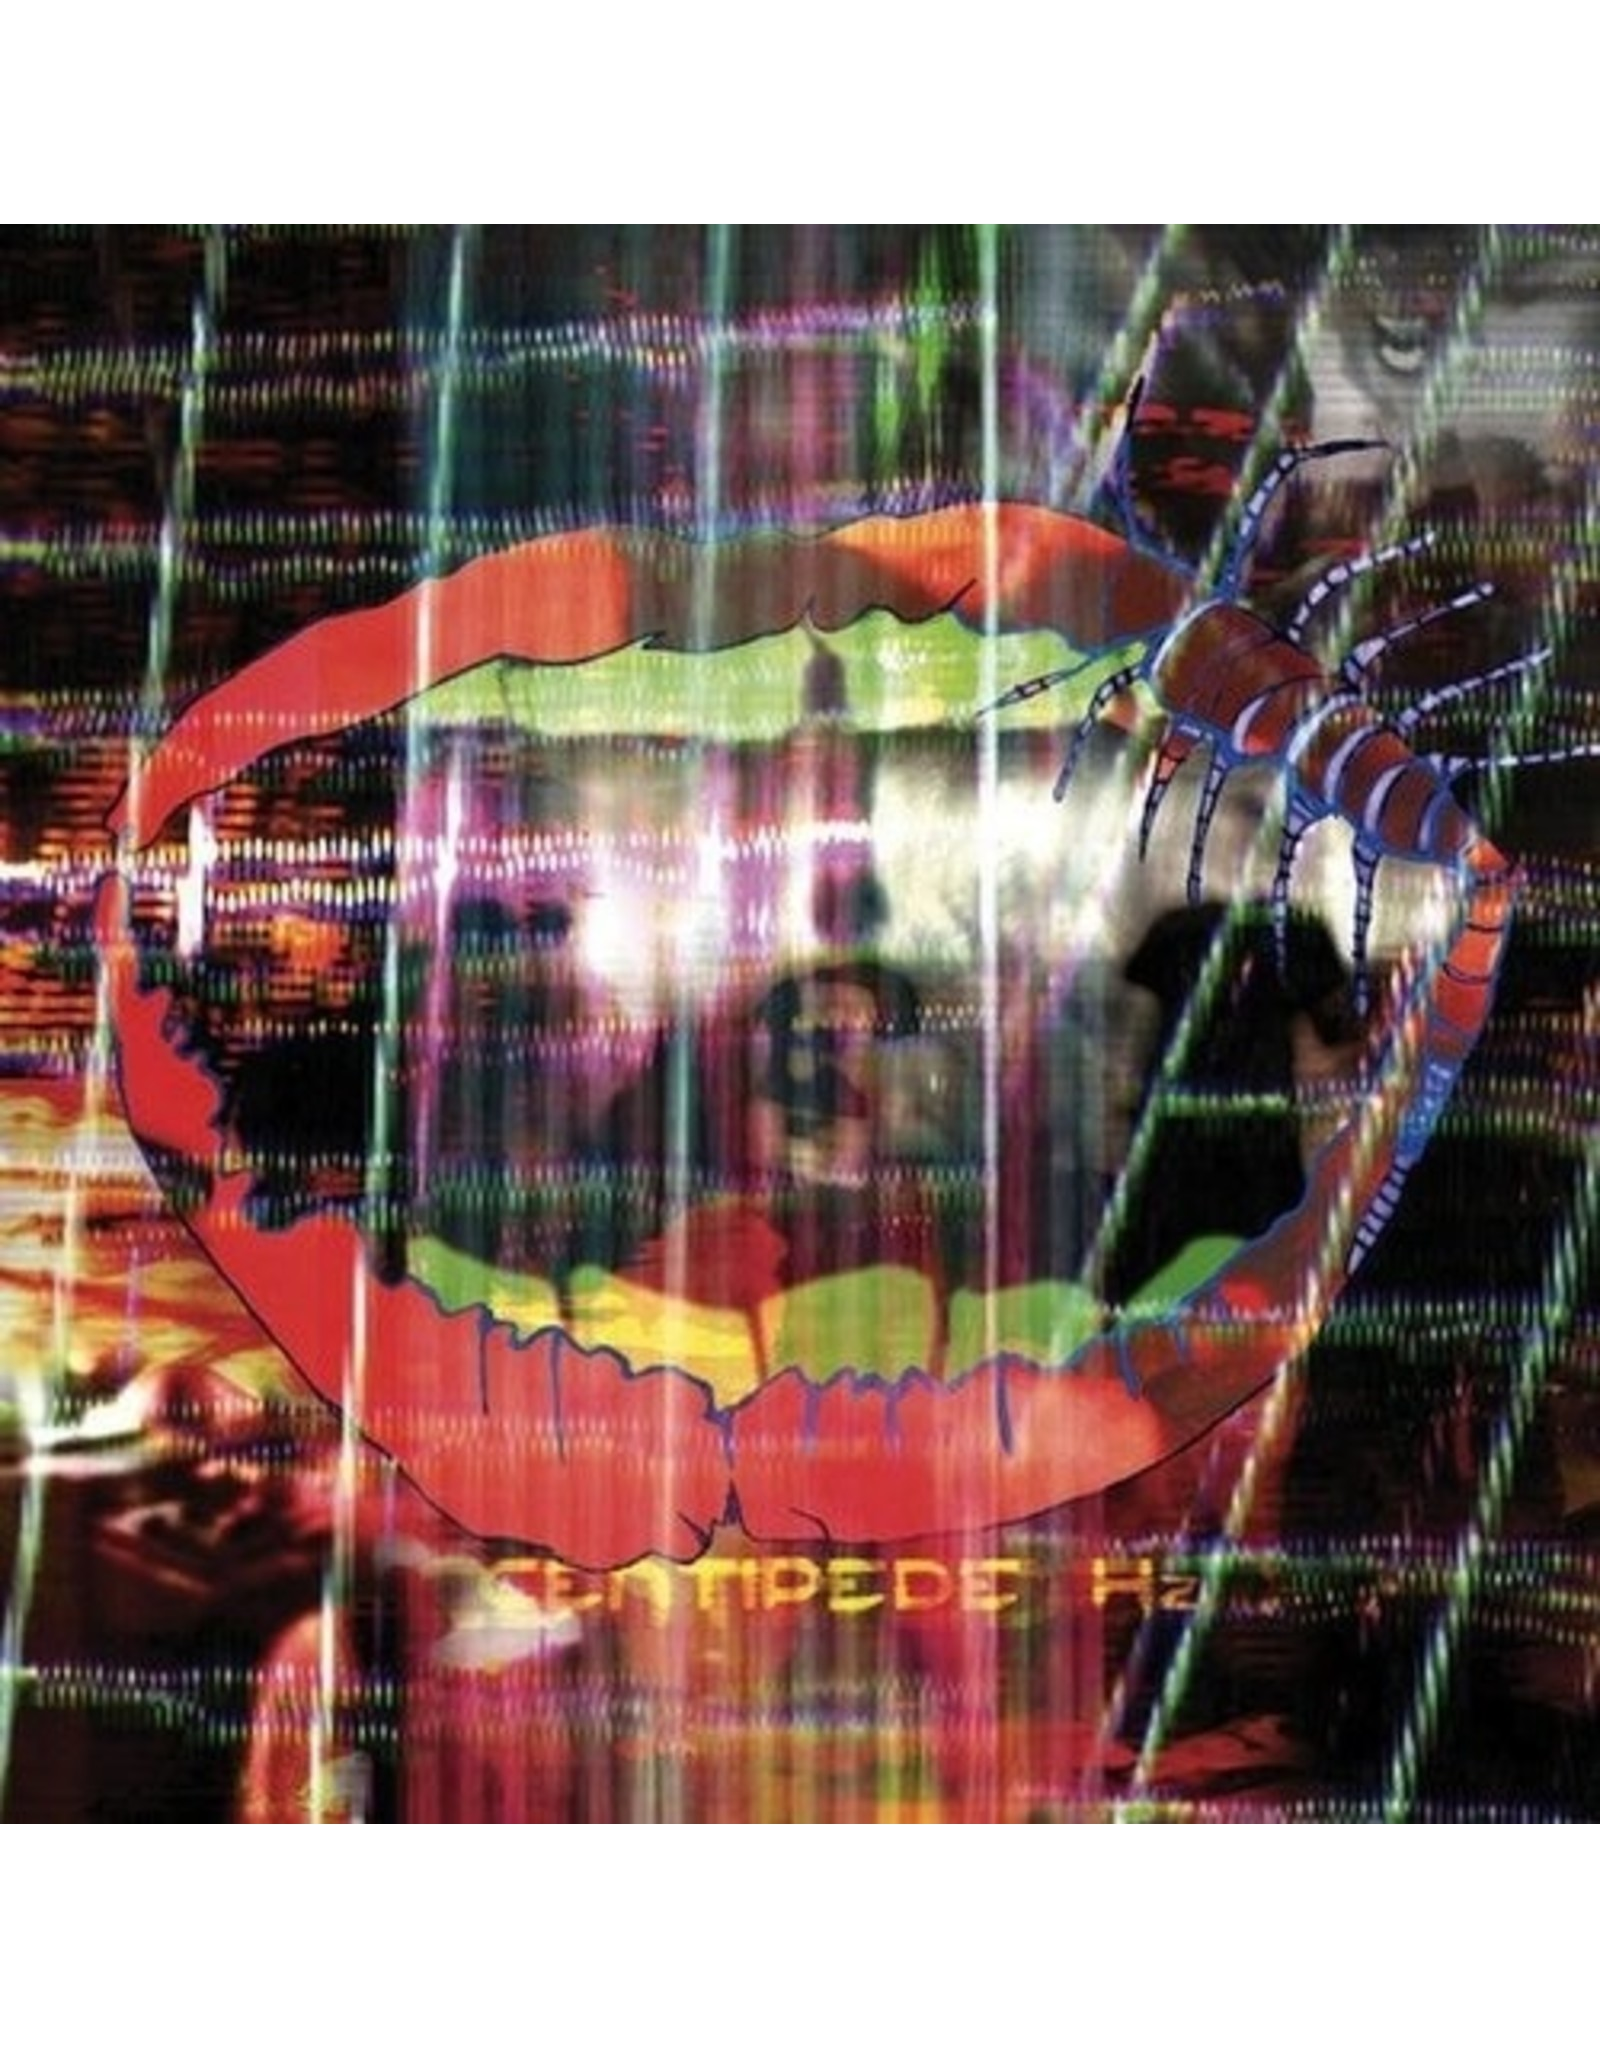 New Vinyl Animal Collective - Centipede HZ 2LP